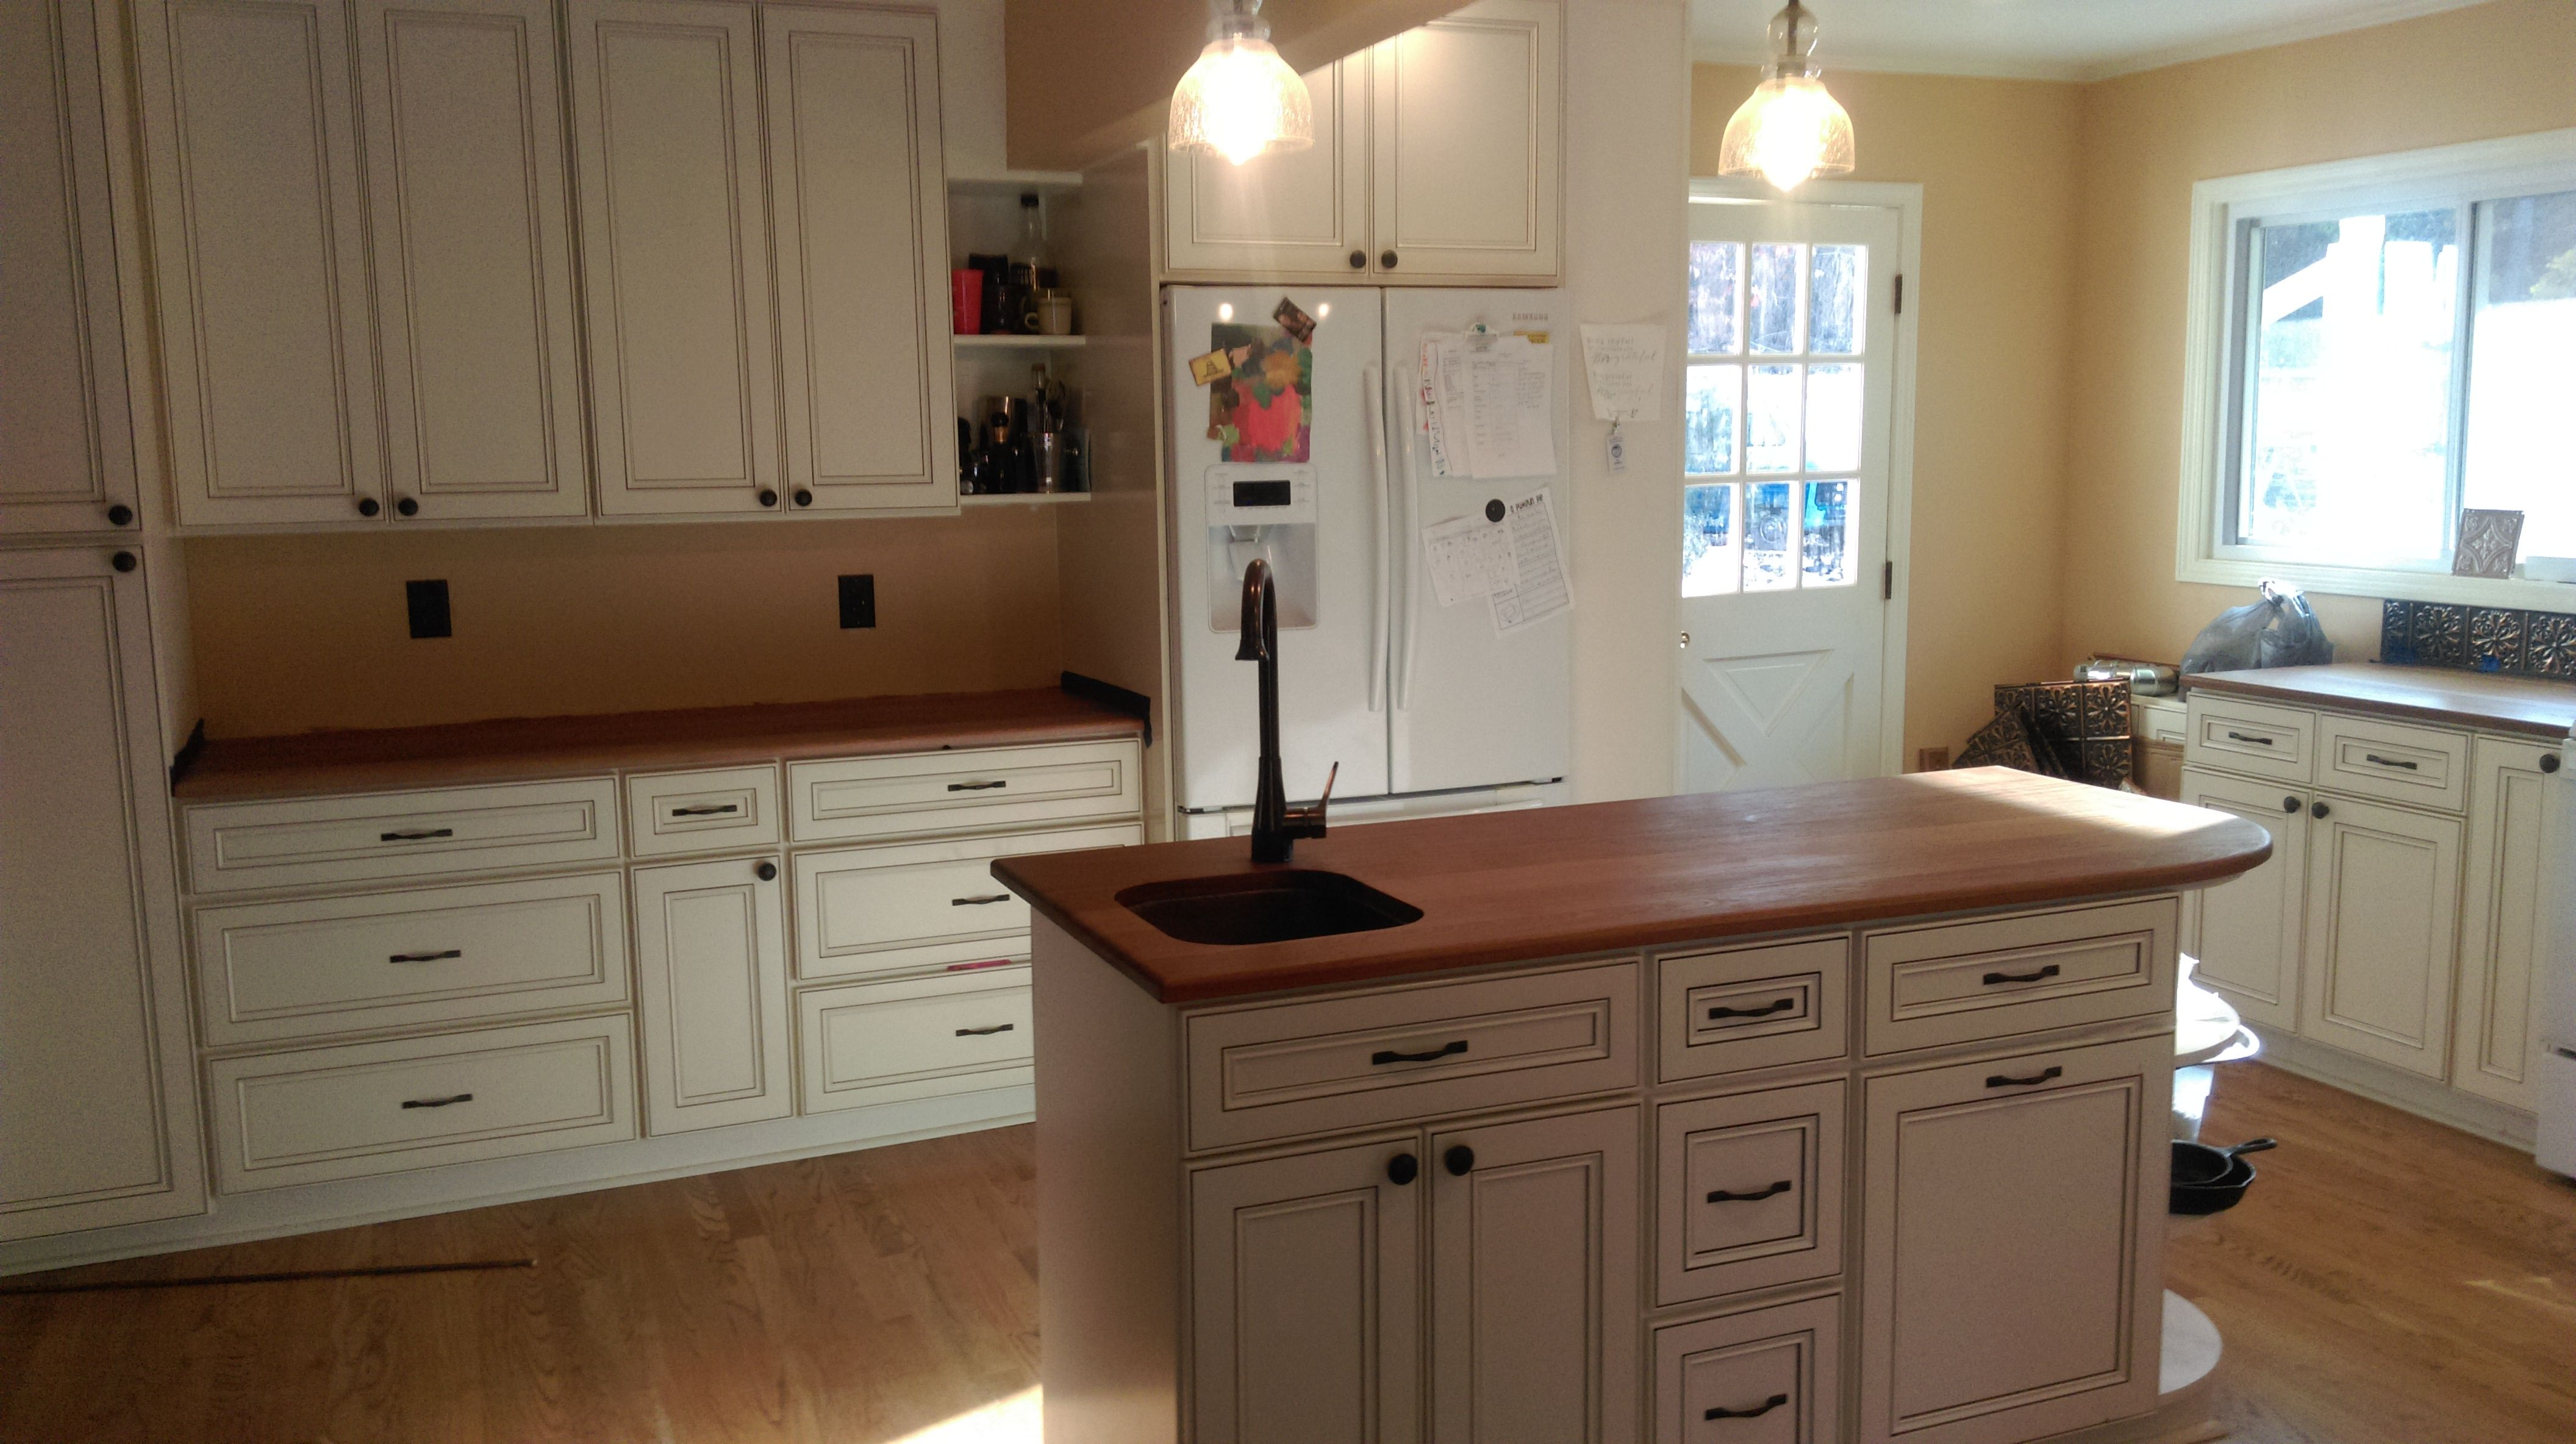 Our York Antique White Cabinets Are An Extremely High End Line That Is Very Popular White Diy Kitchens Antique White Kitchen Cabinets Antique White Kitchen